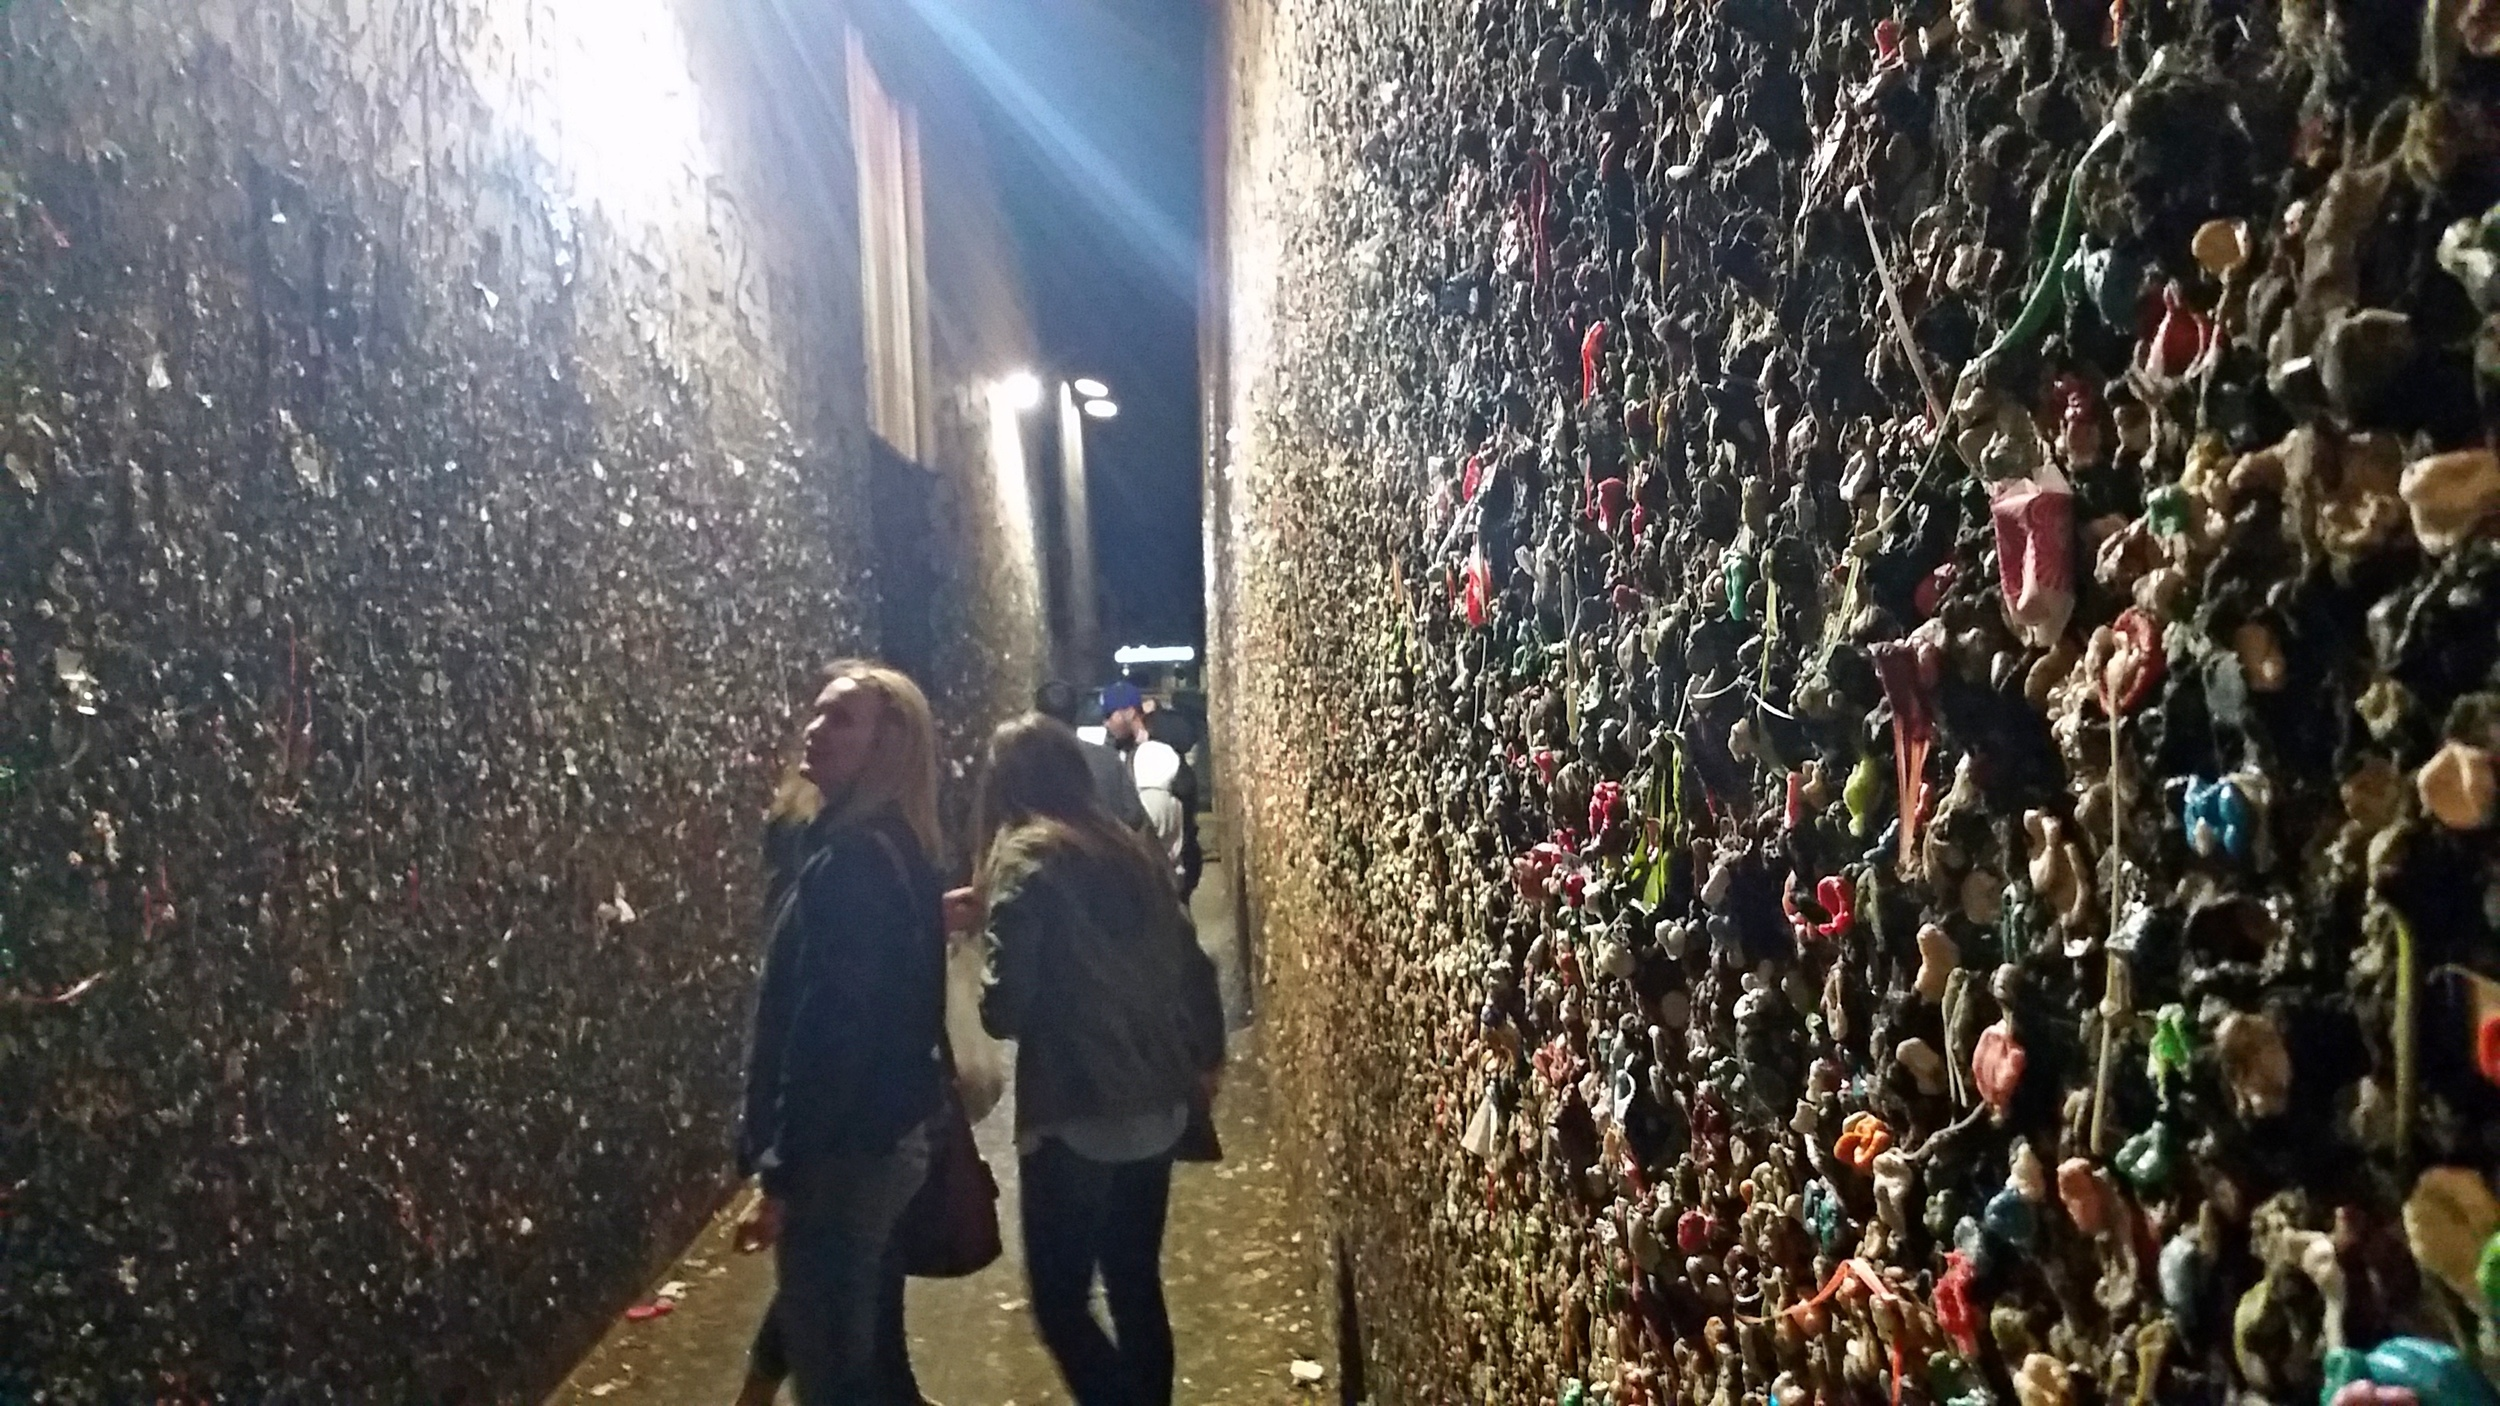 Bubblegum Alley, in San Luis Obispo. Interesting and slightly revolting. I accidentally brushed up against the wall.